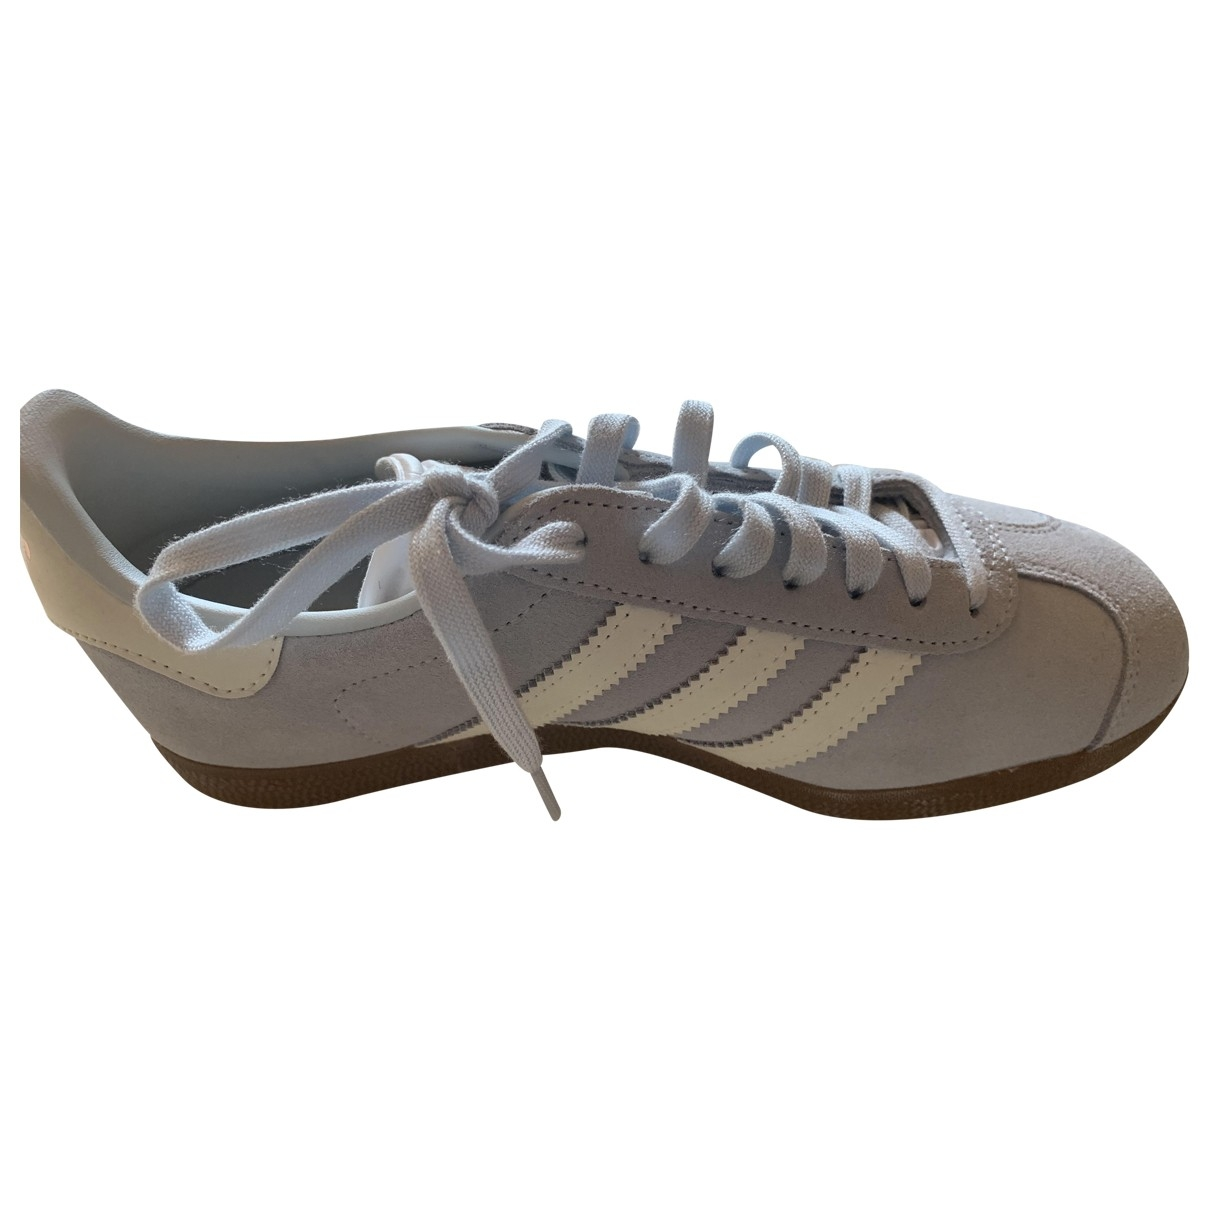 Adidas Gazelle Rubber Trainers for Women 35.5 EU